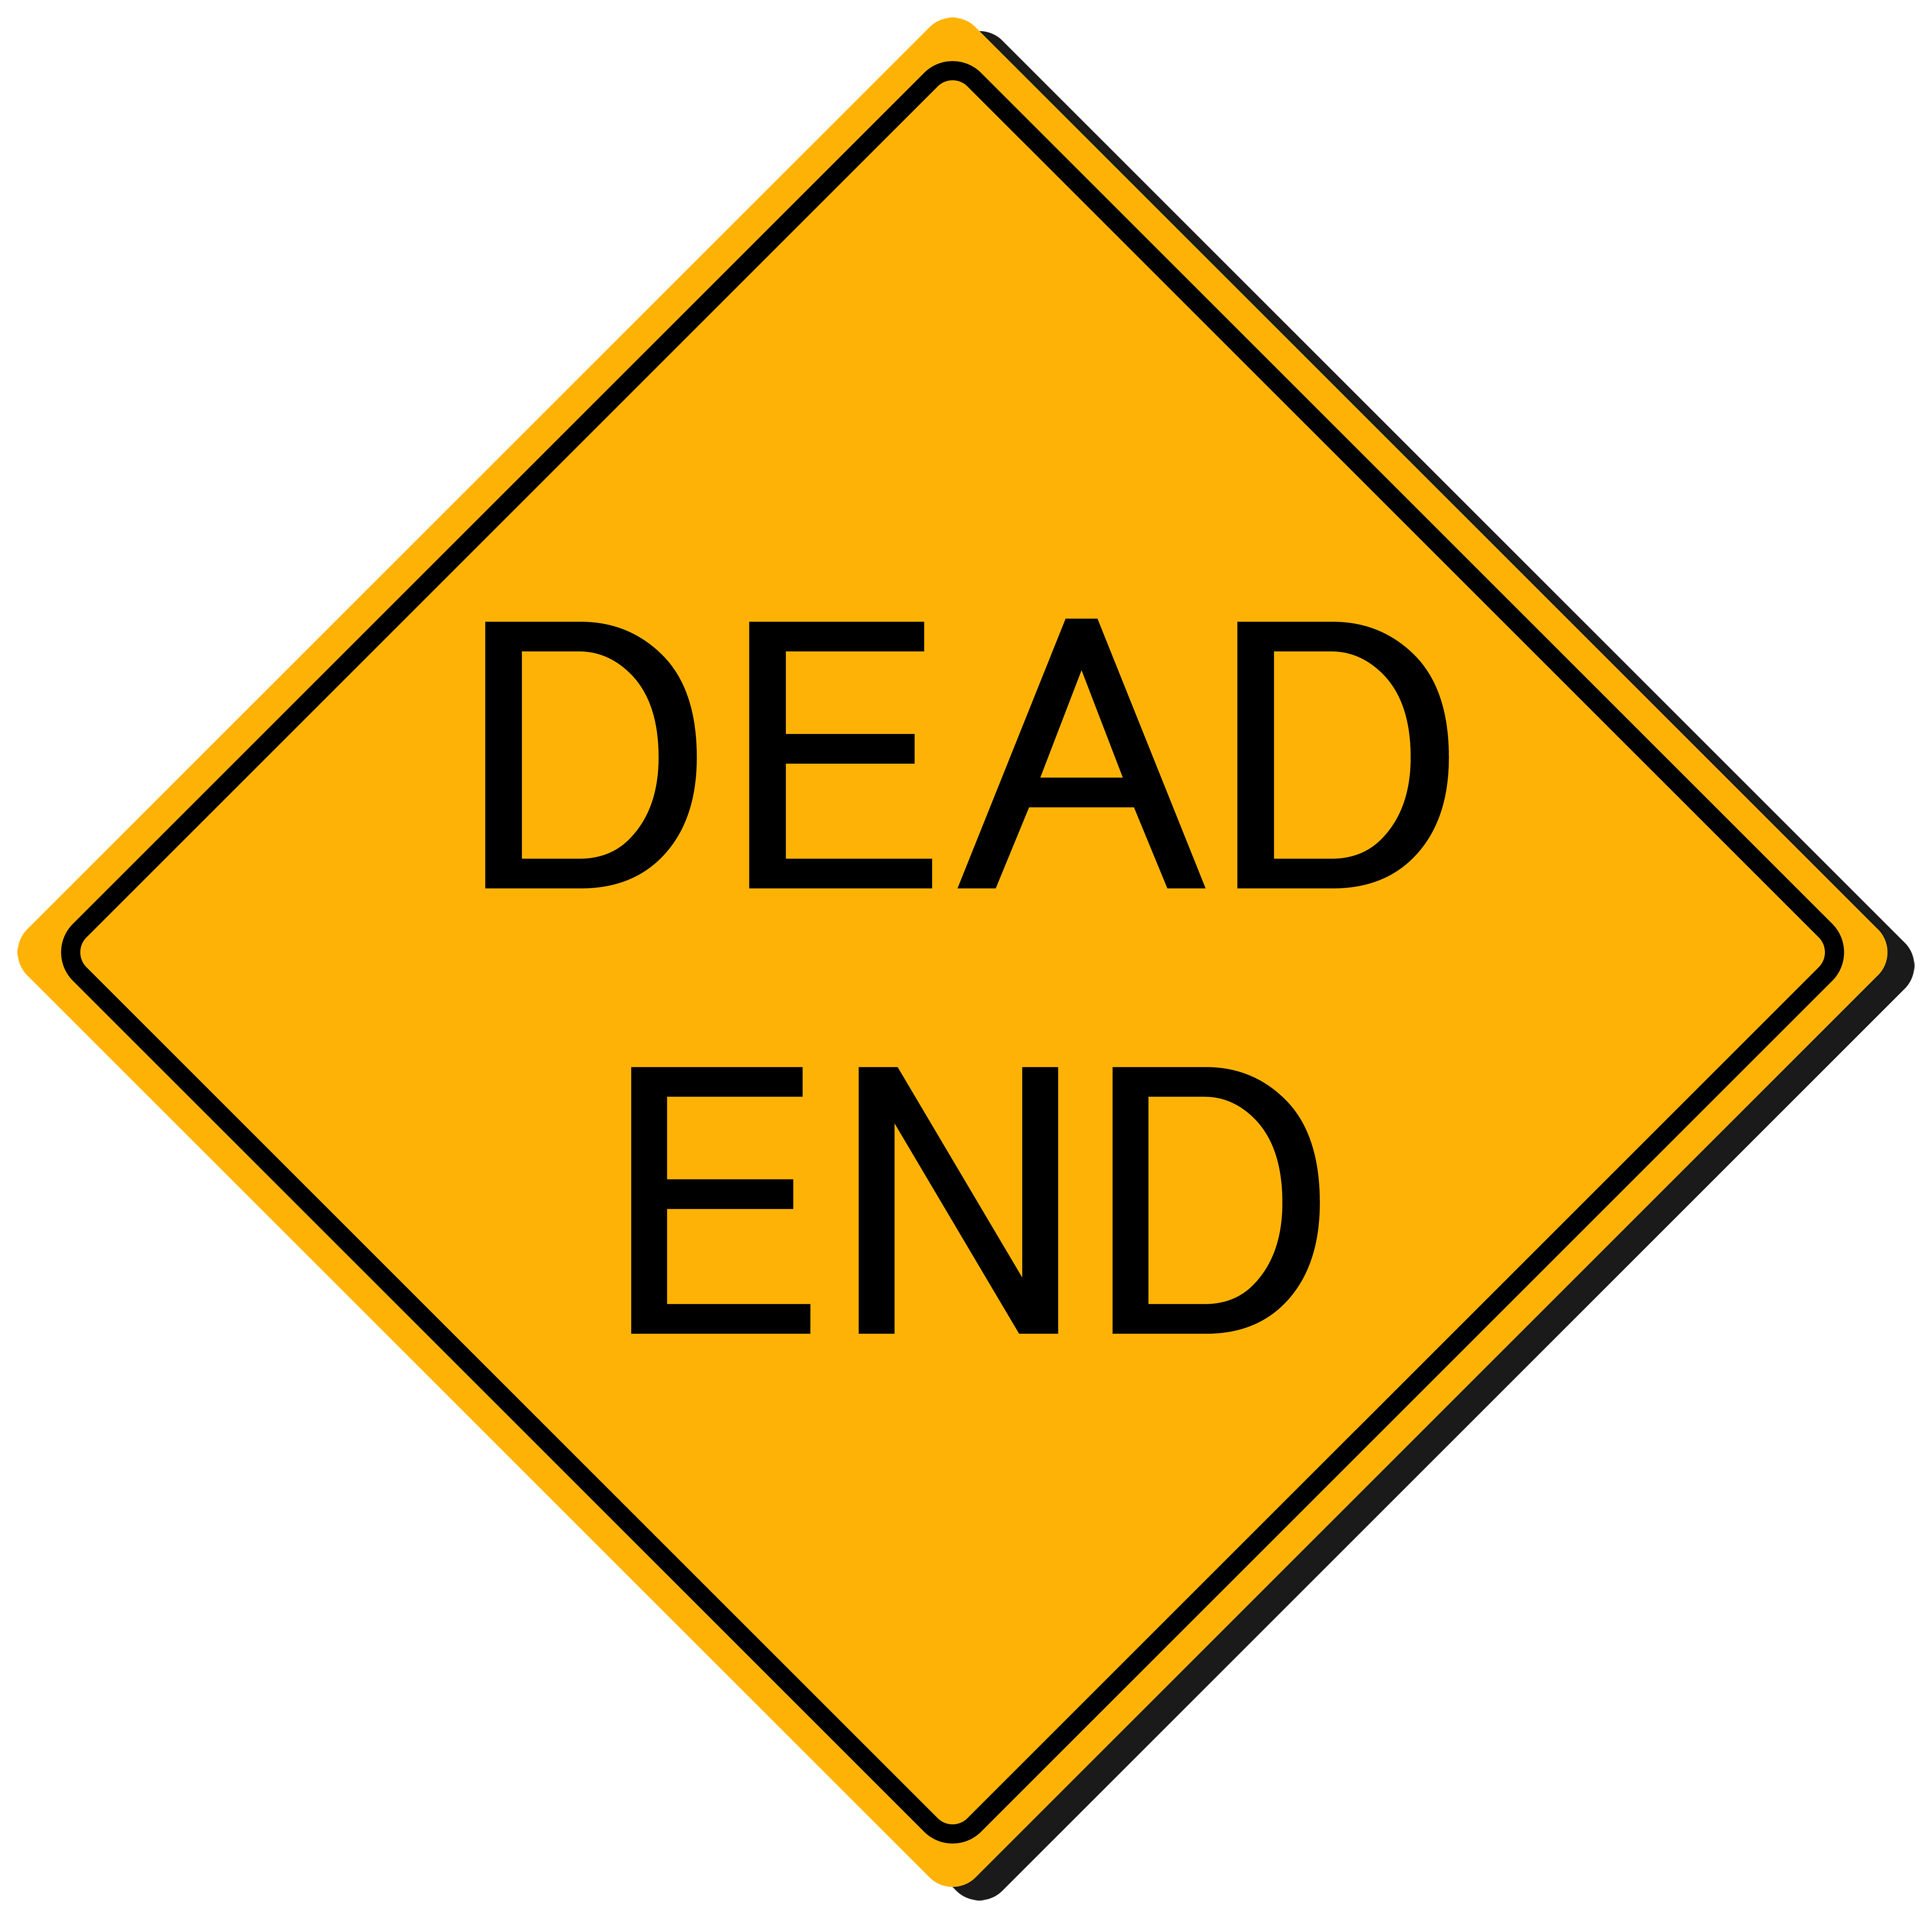 Dead End Sign PNG Clipart.